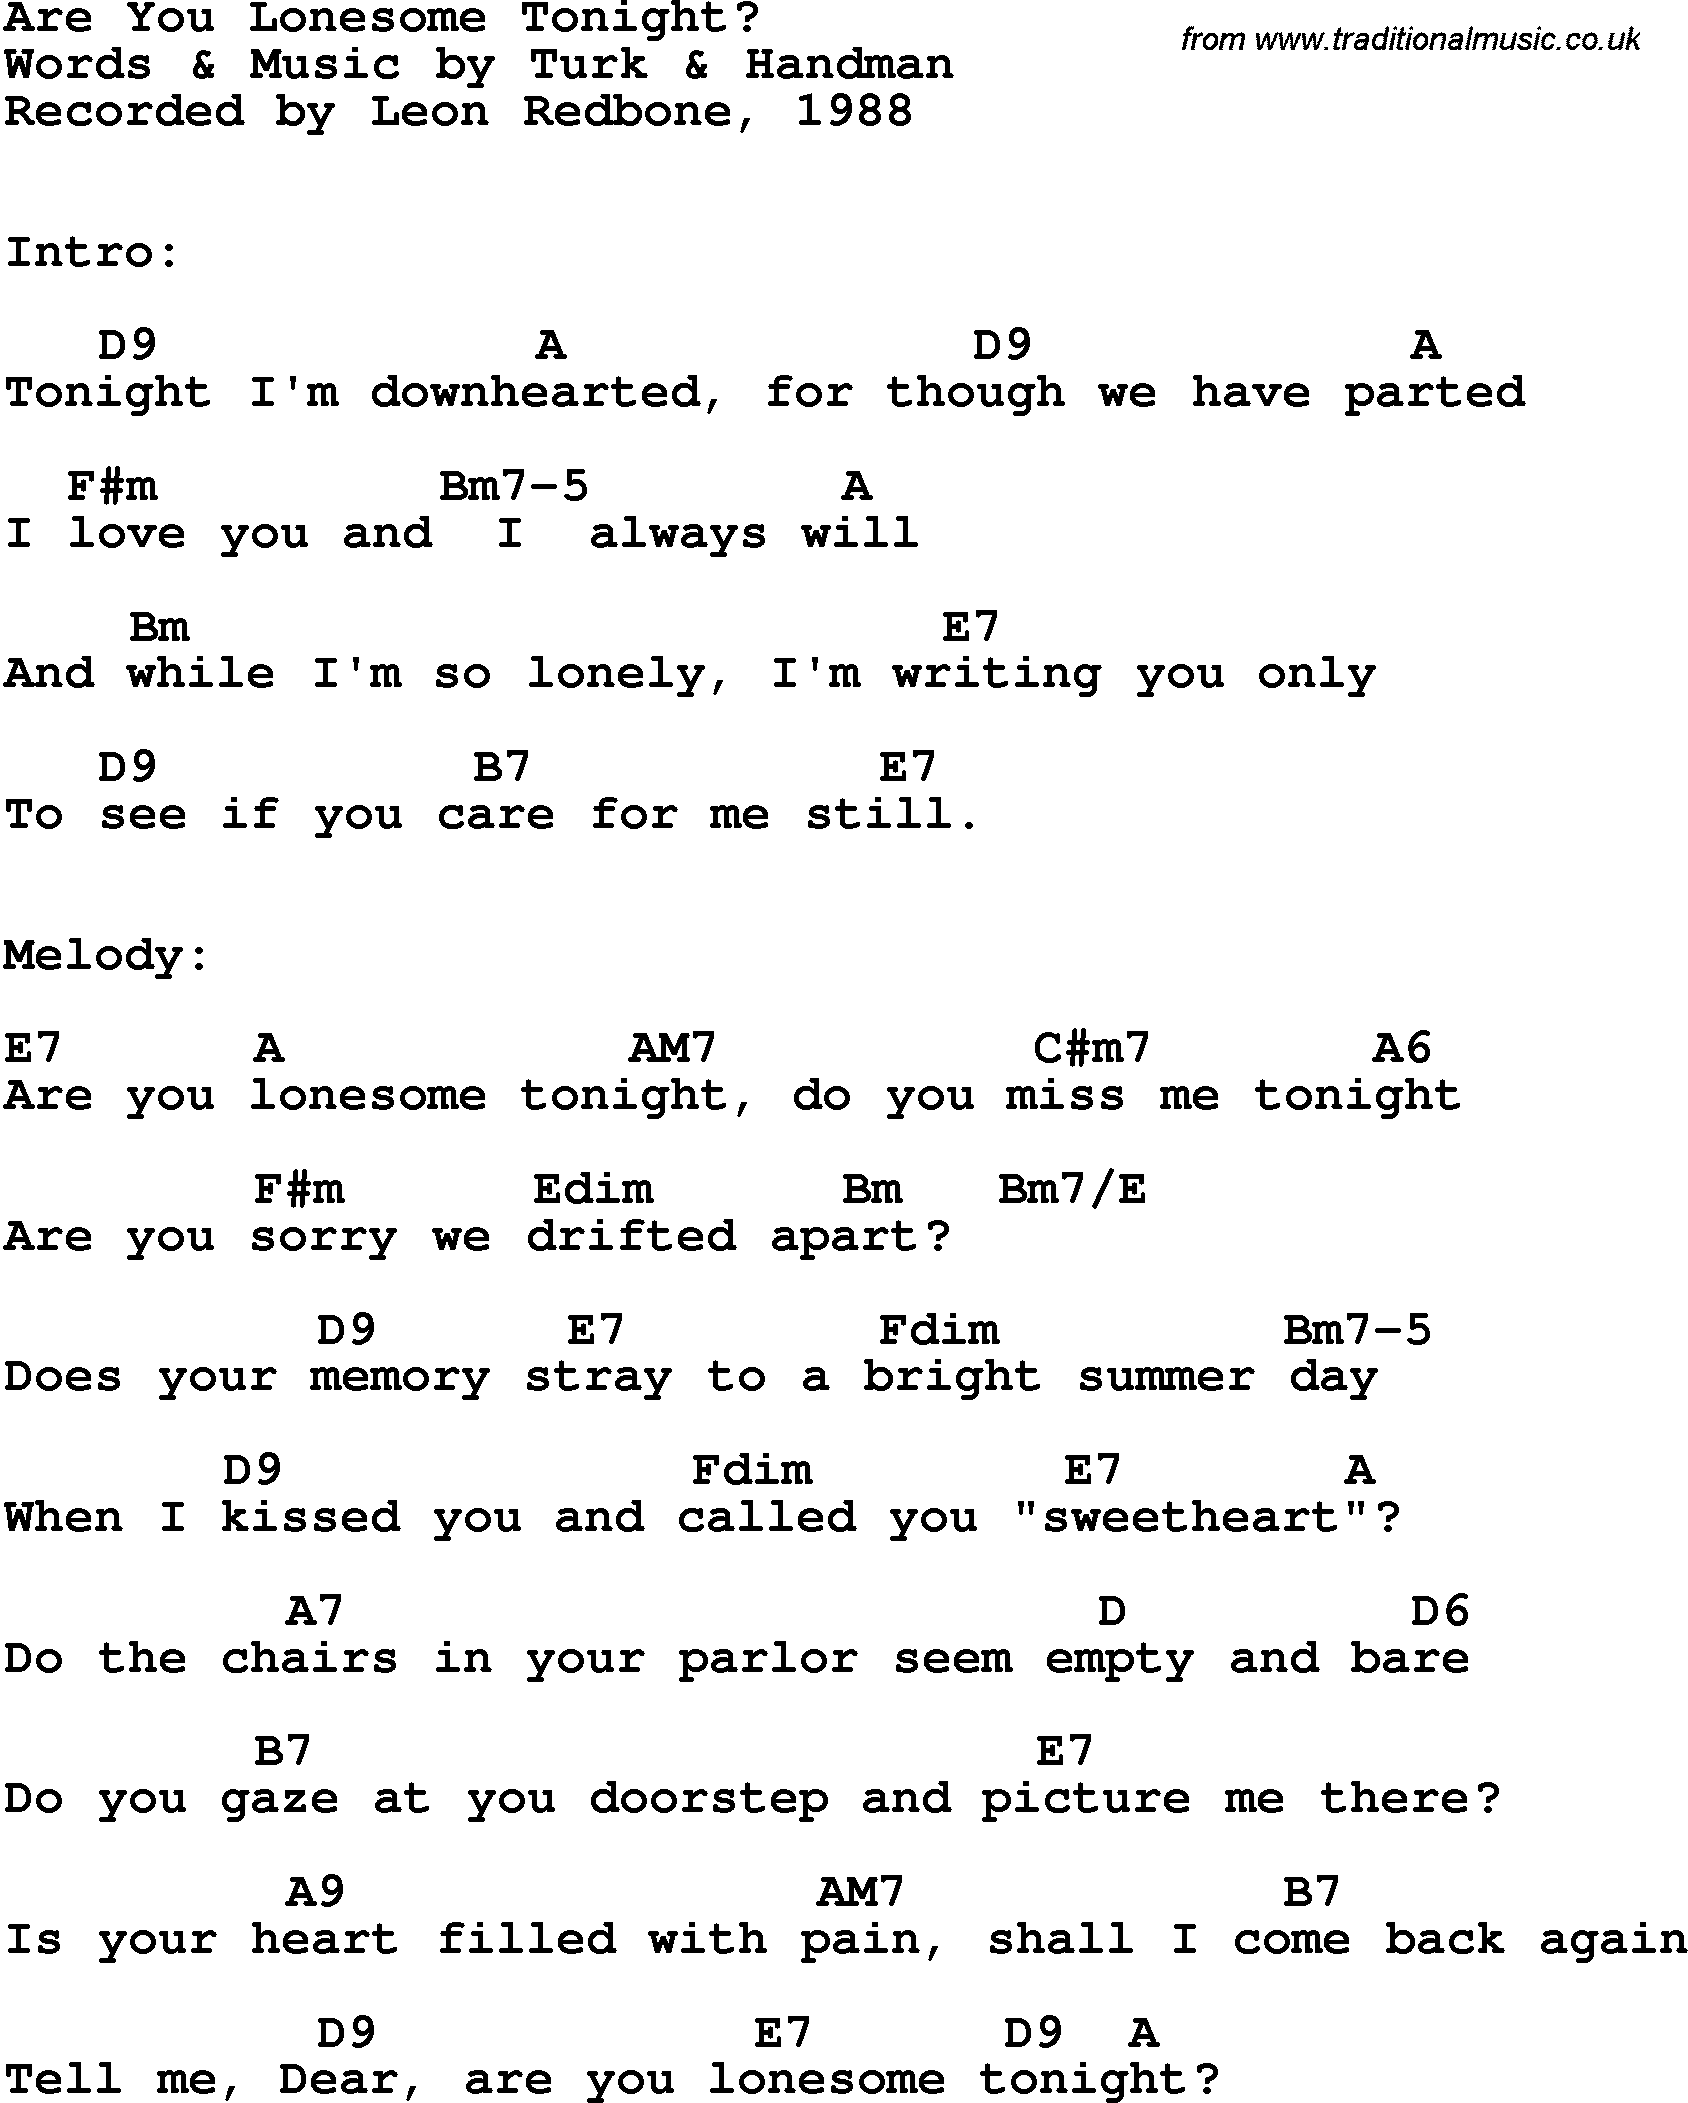 Song lyrics with guitar chords for are you lonesome for Songs from 1988 uk